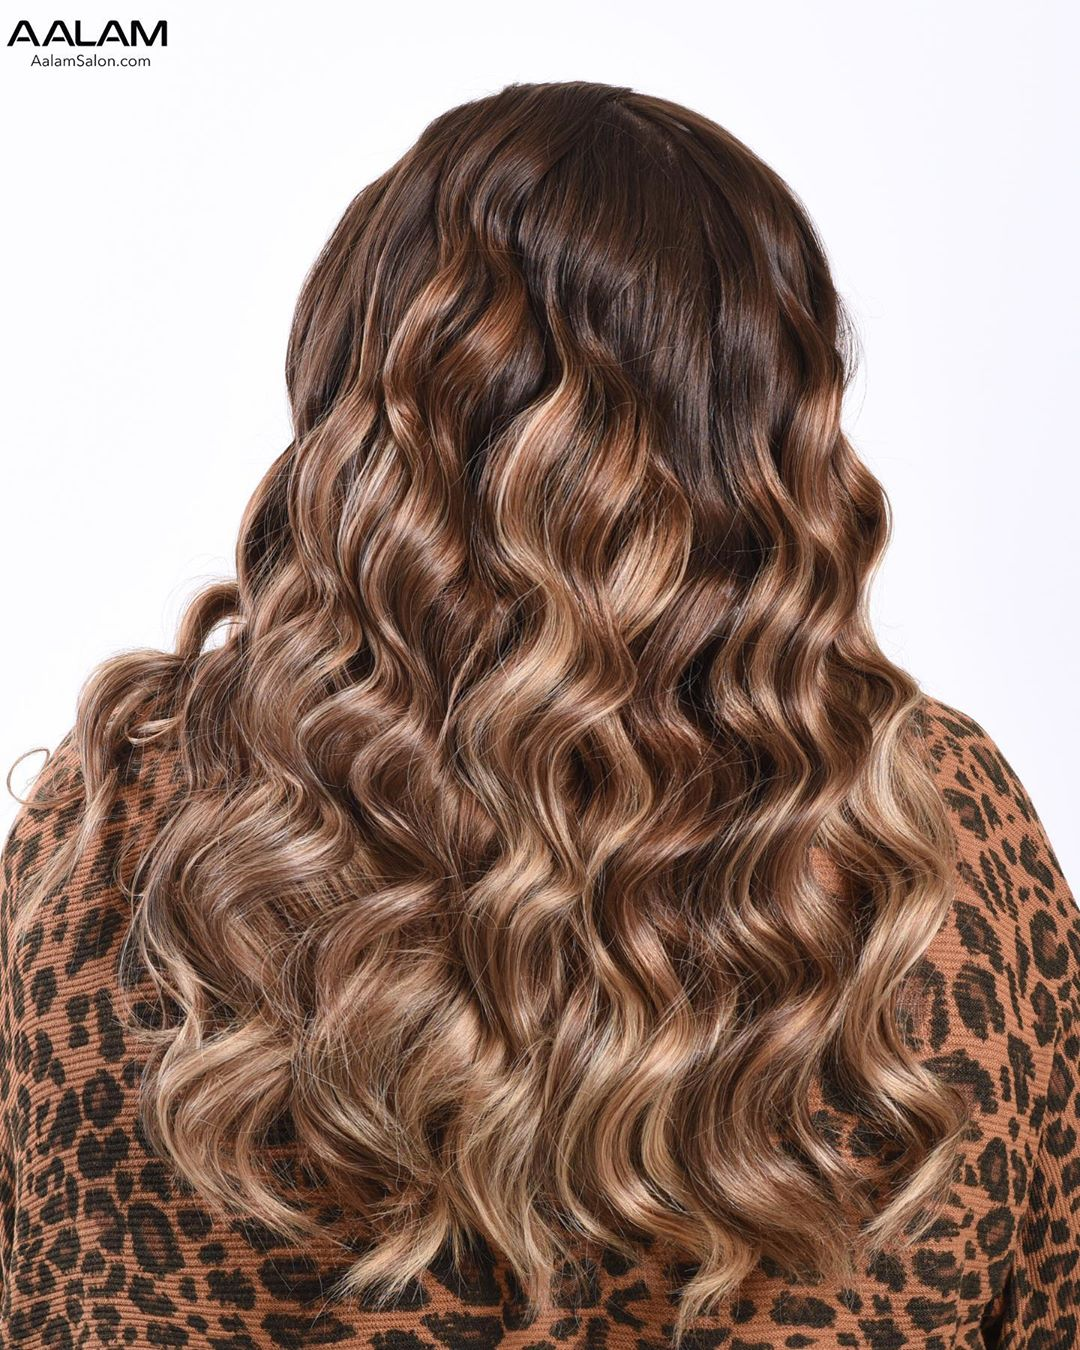 Caramel Brown Hair with Highlights and Lowlights